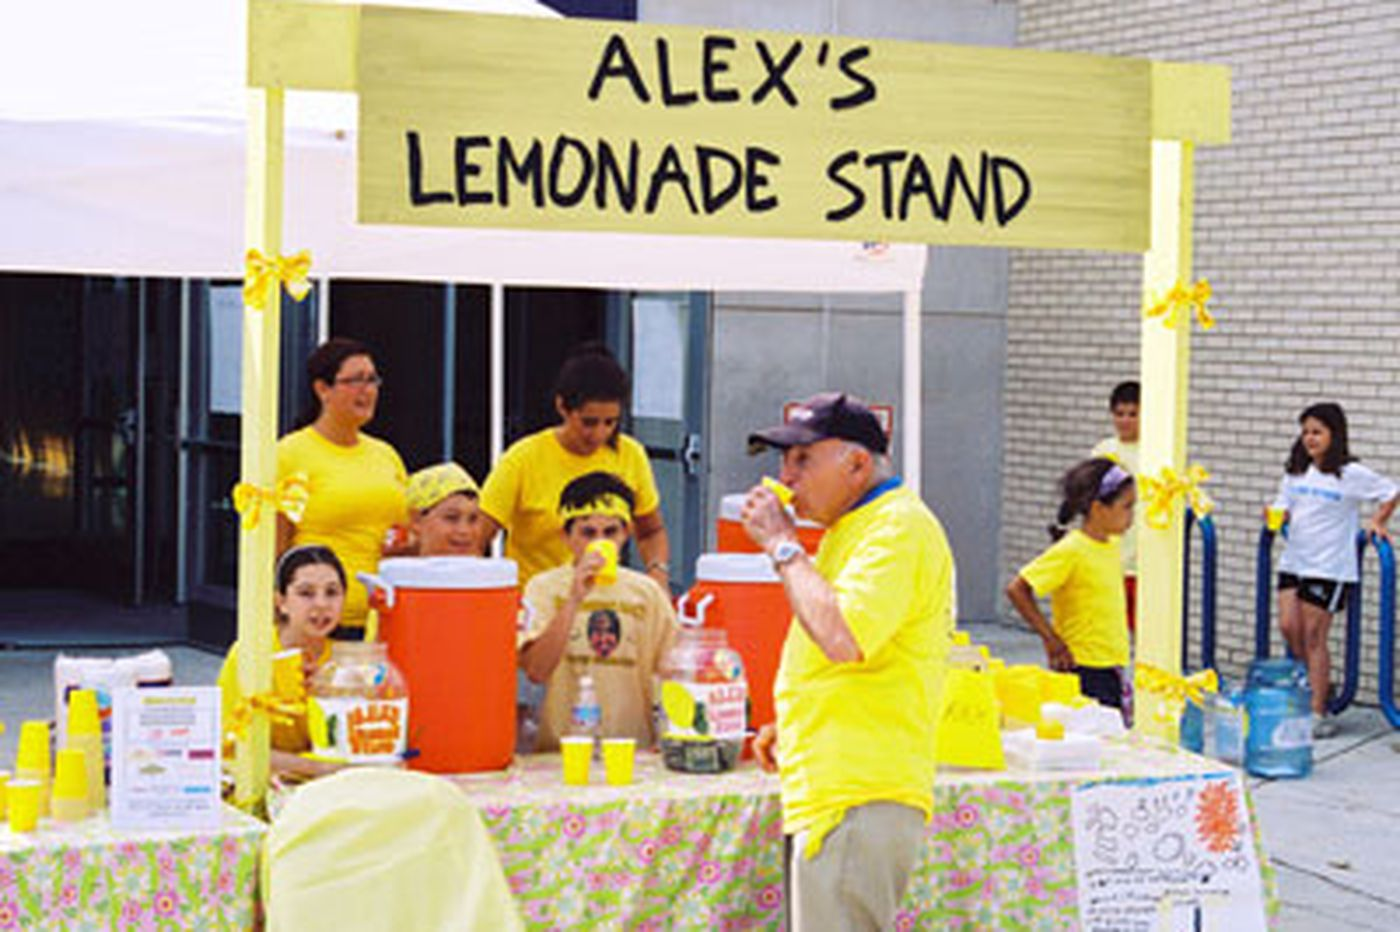 Alex's Lemonade Stand's challenge to local companies